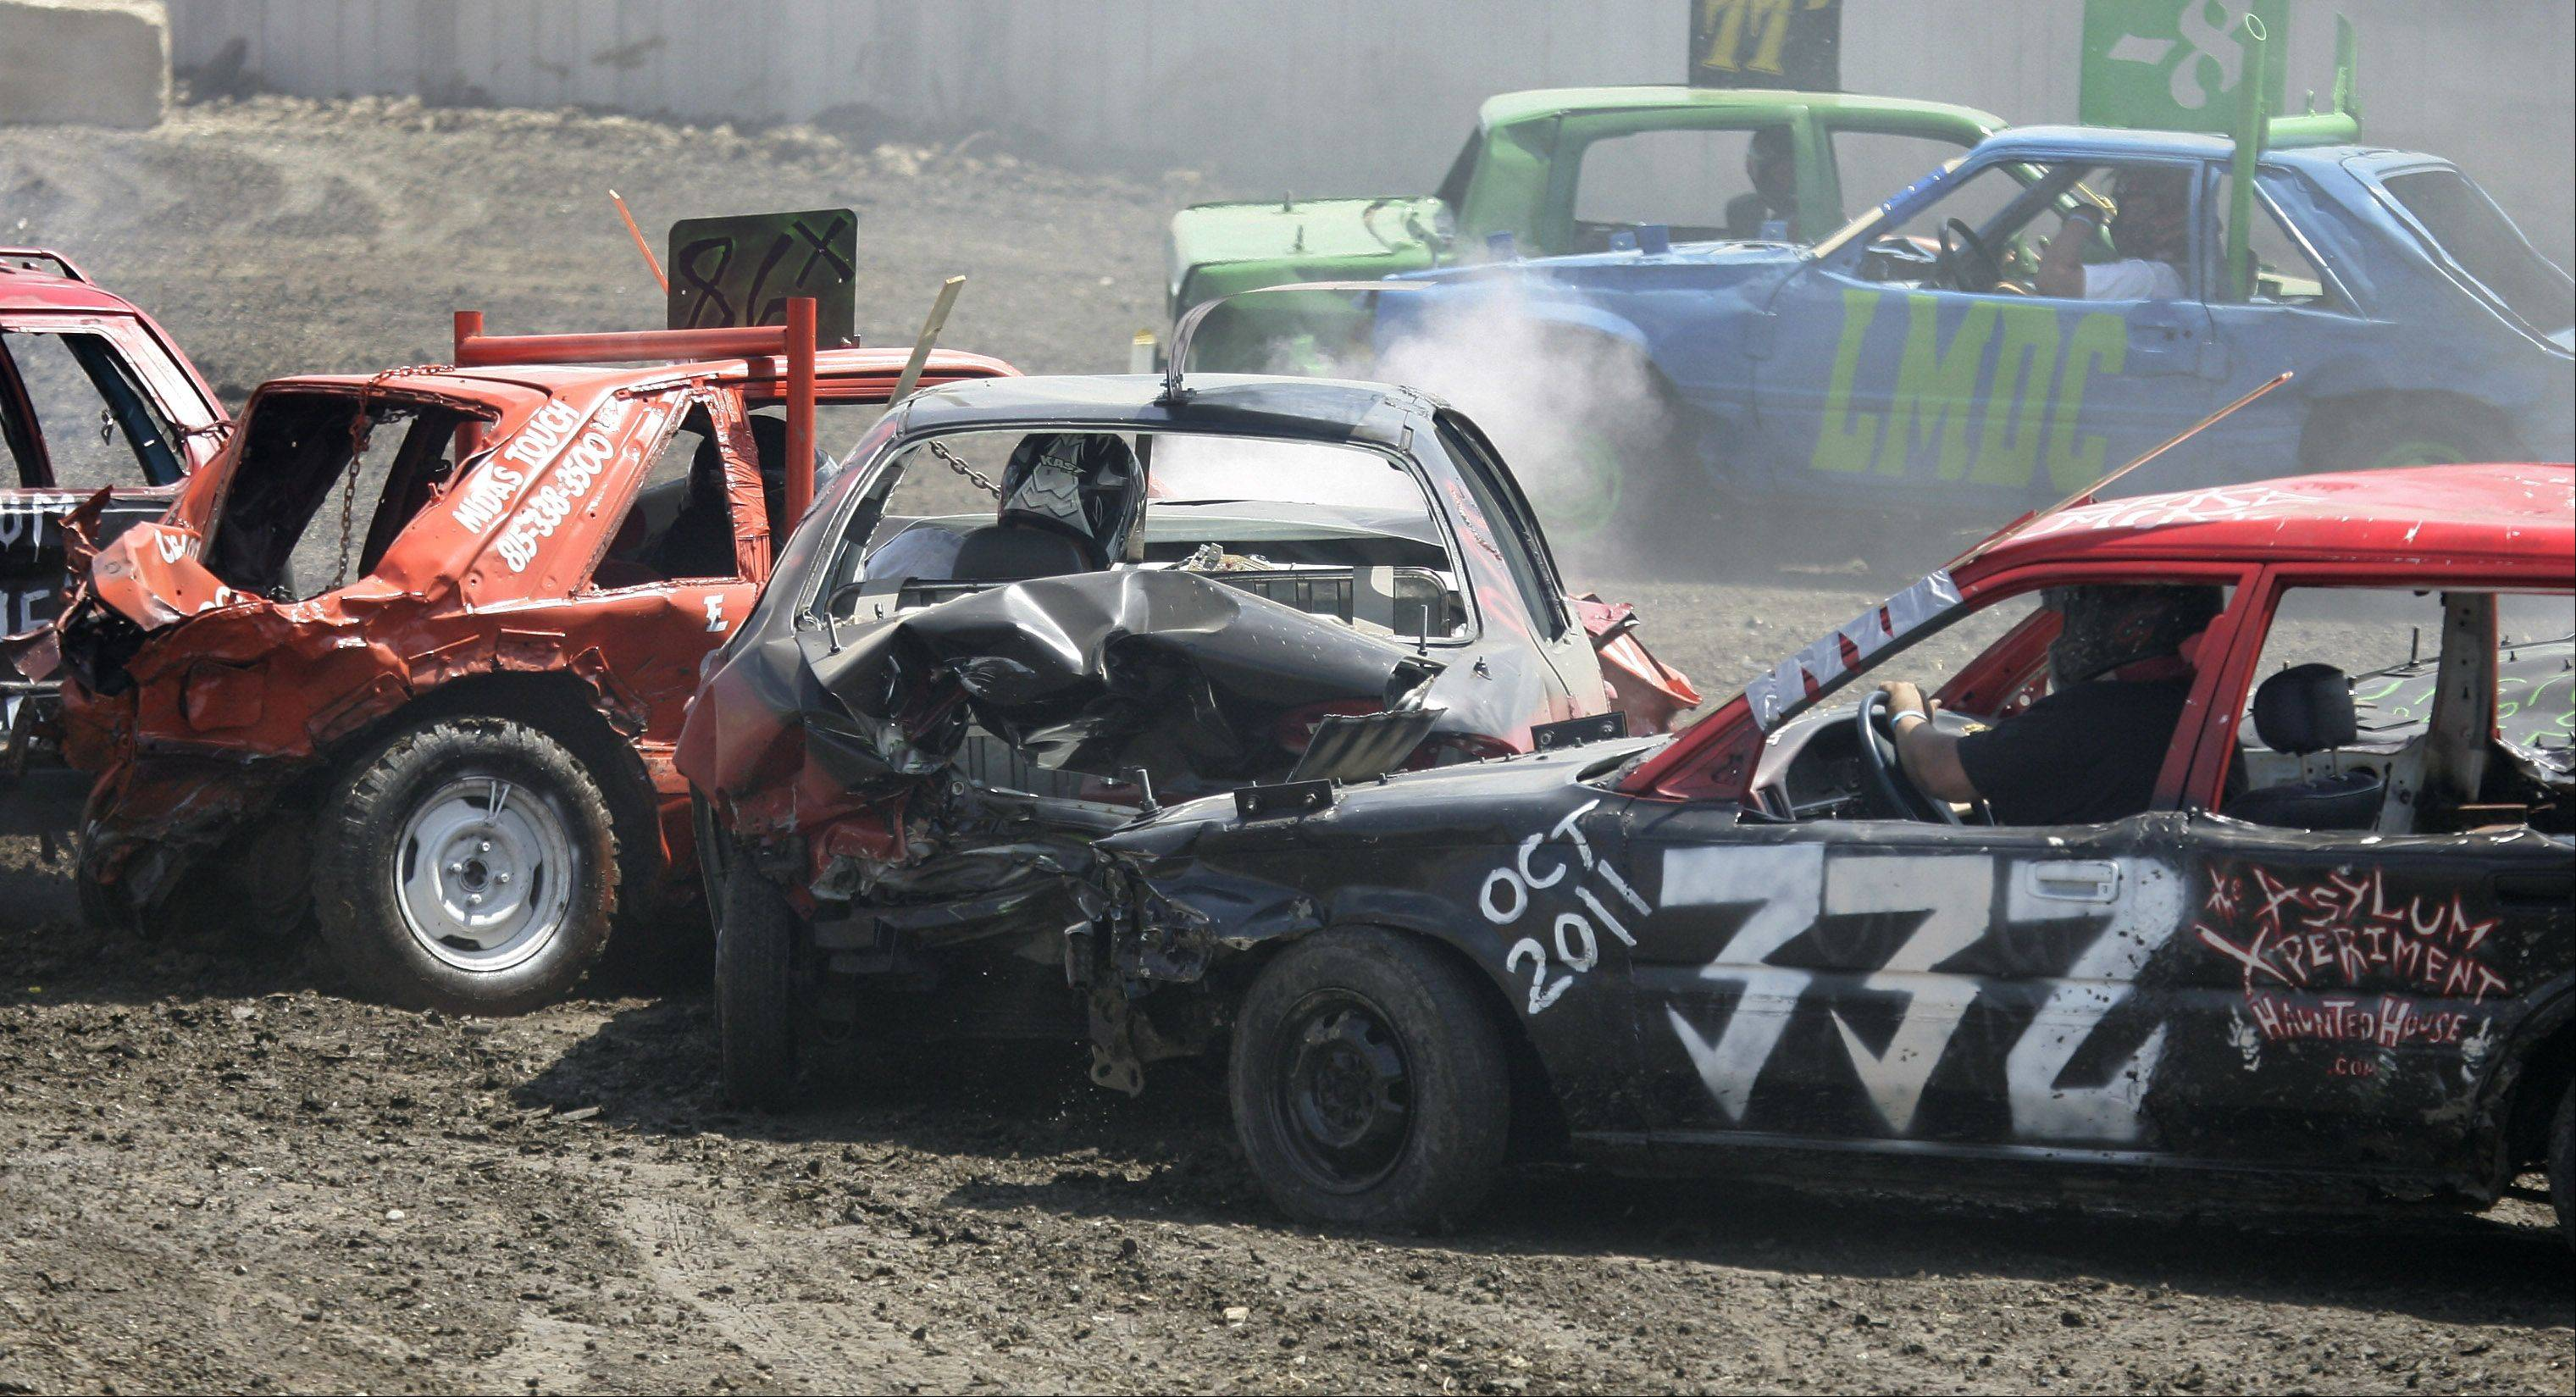 Gilbert R. Boucher II/gboucher@dailyherald.com, 2011 A demolition derby is on tap again this year at the Lake County Fair in Grayslake.